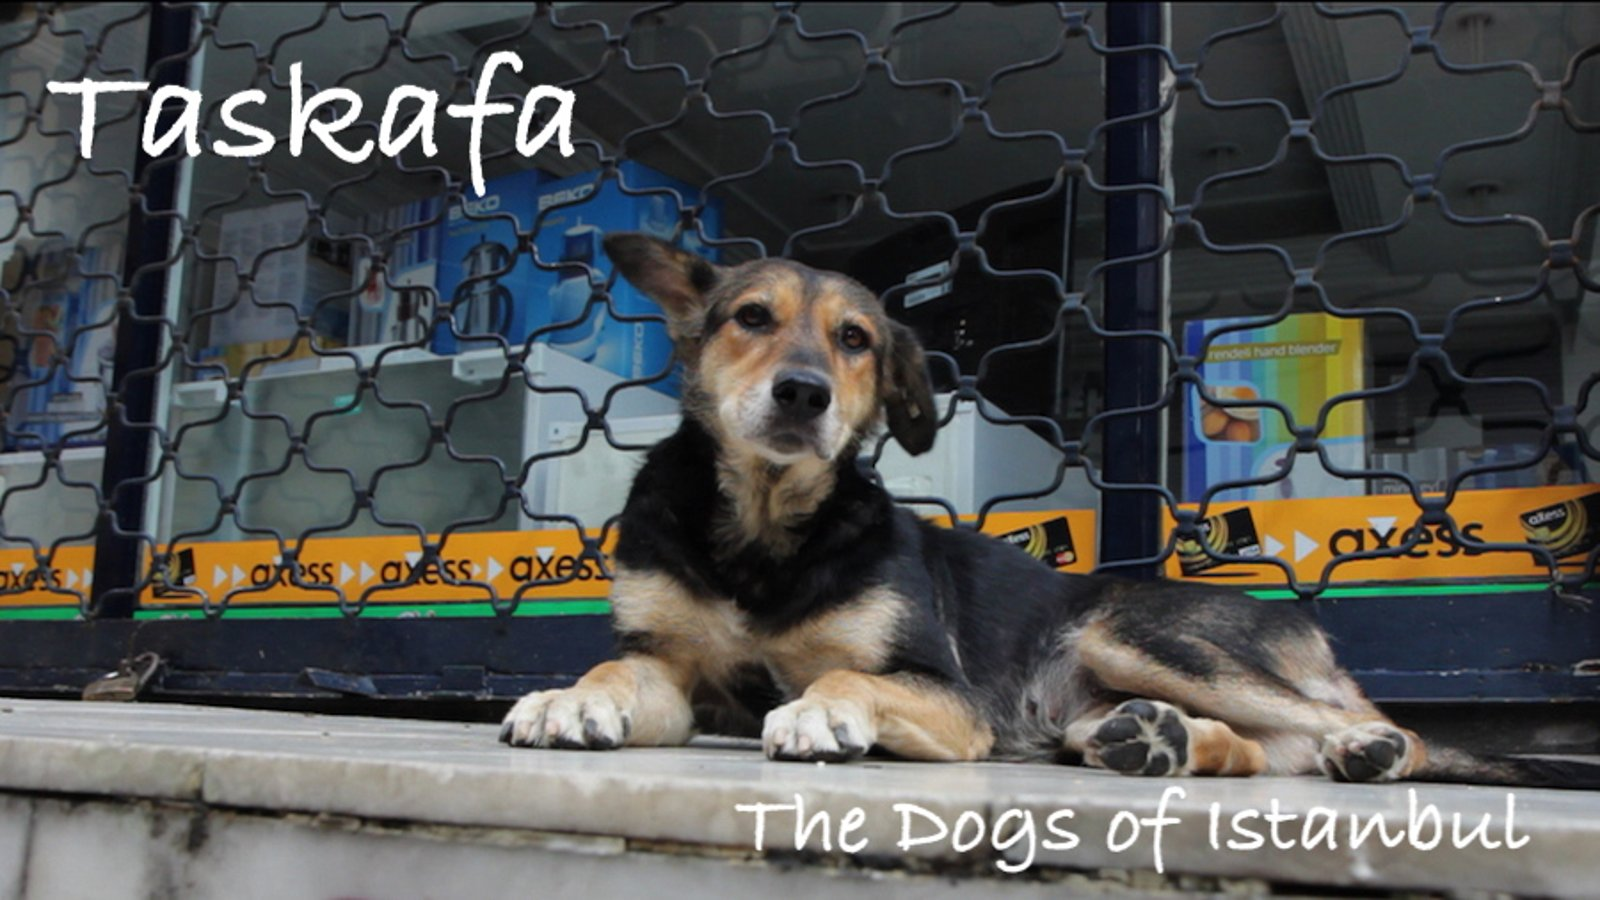 Taskafa, Stories of the Street - The Street Dogs of Istanbul